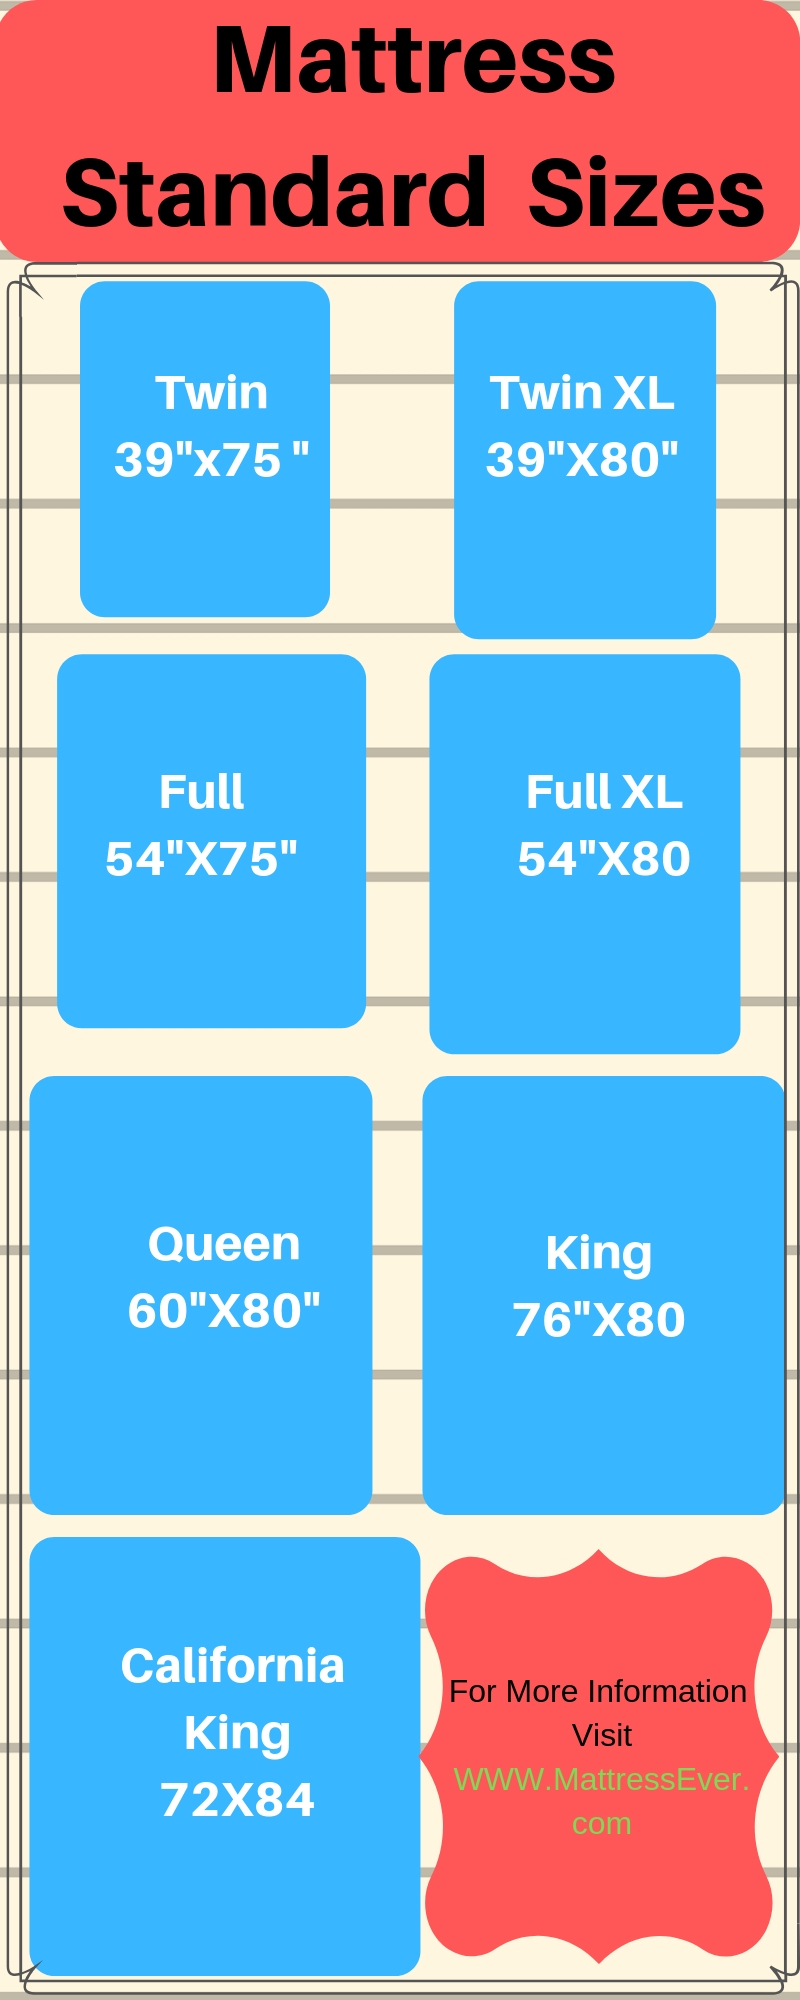 mattress sizes info graphics